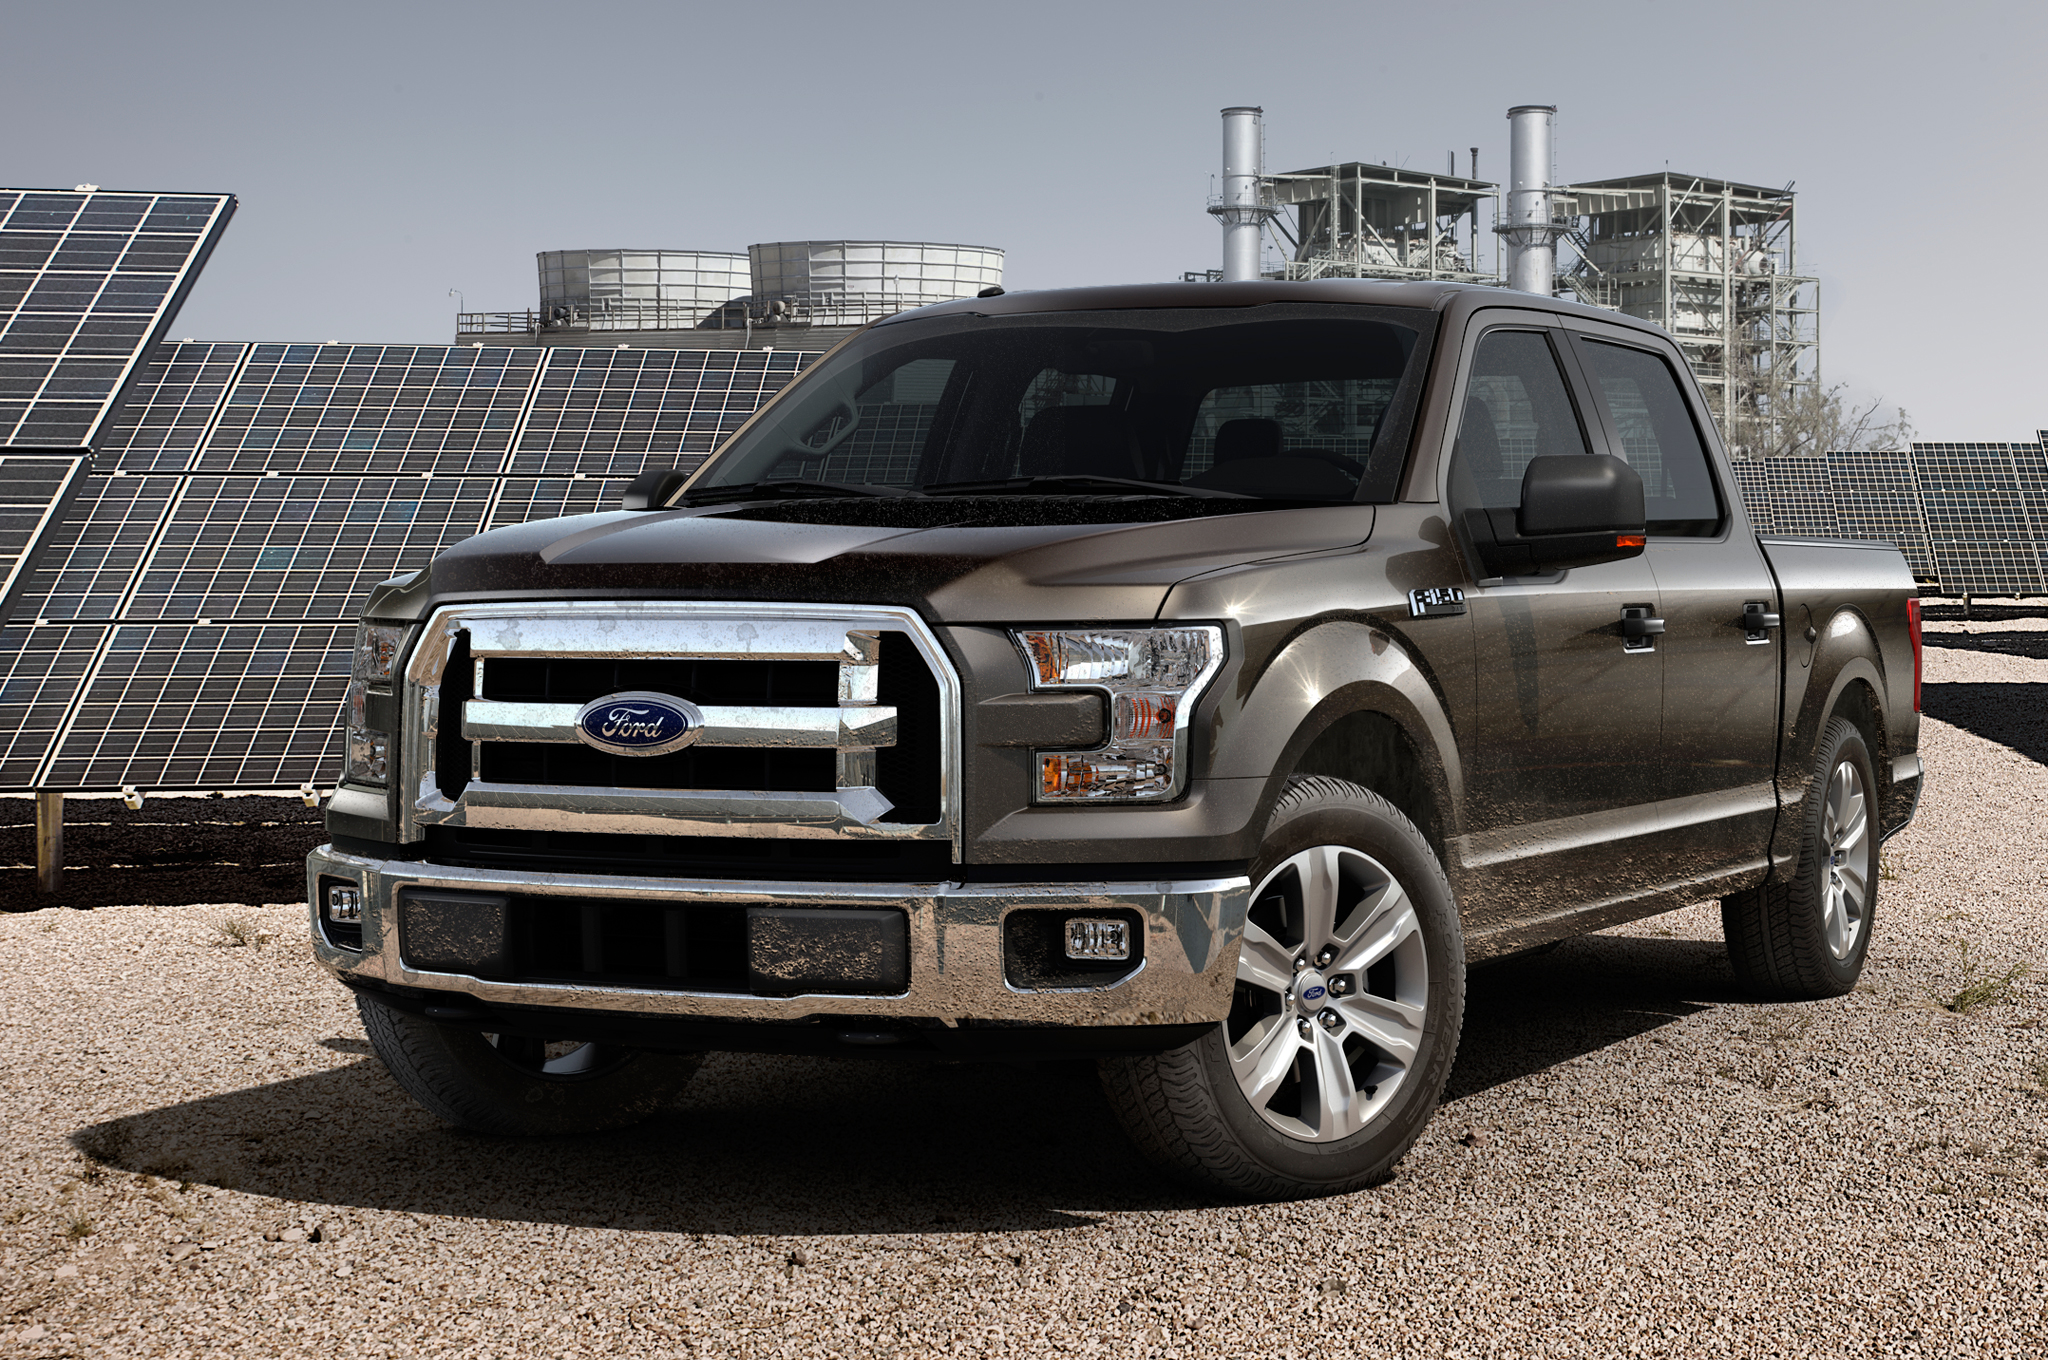 2015 Ford F 150 Desktop Background Wallpapers 7818   Grivucom 2048x1360